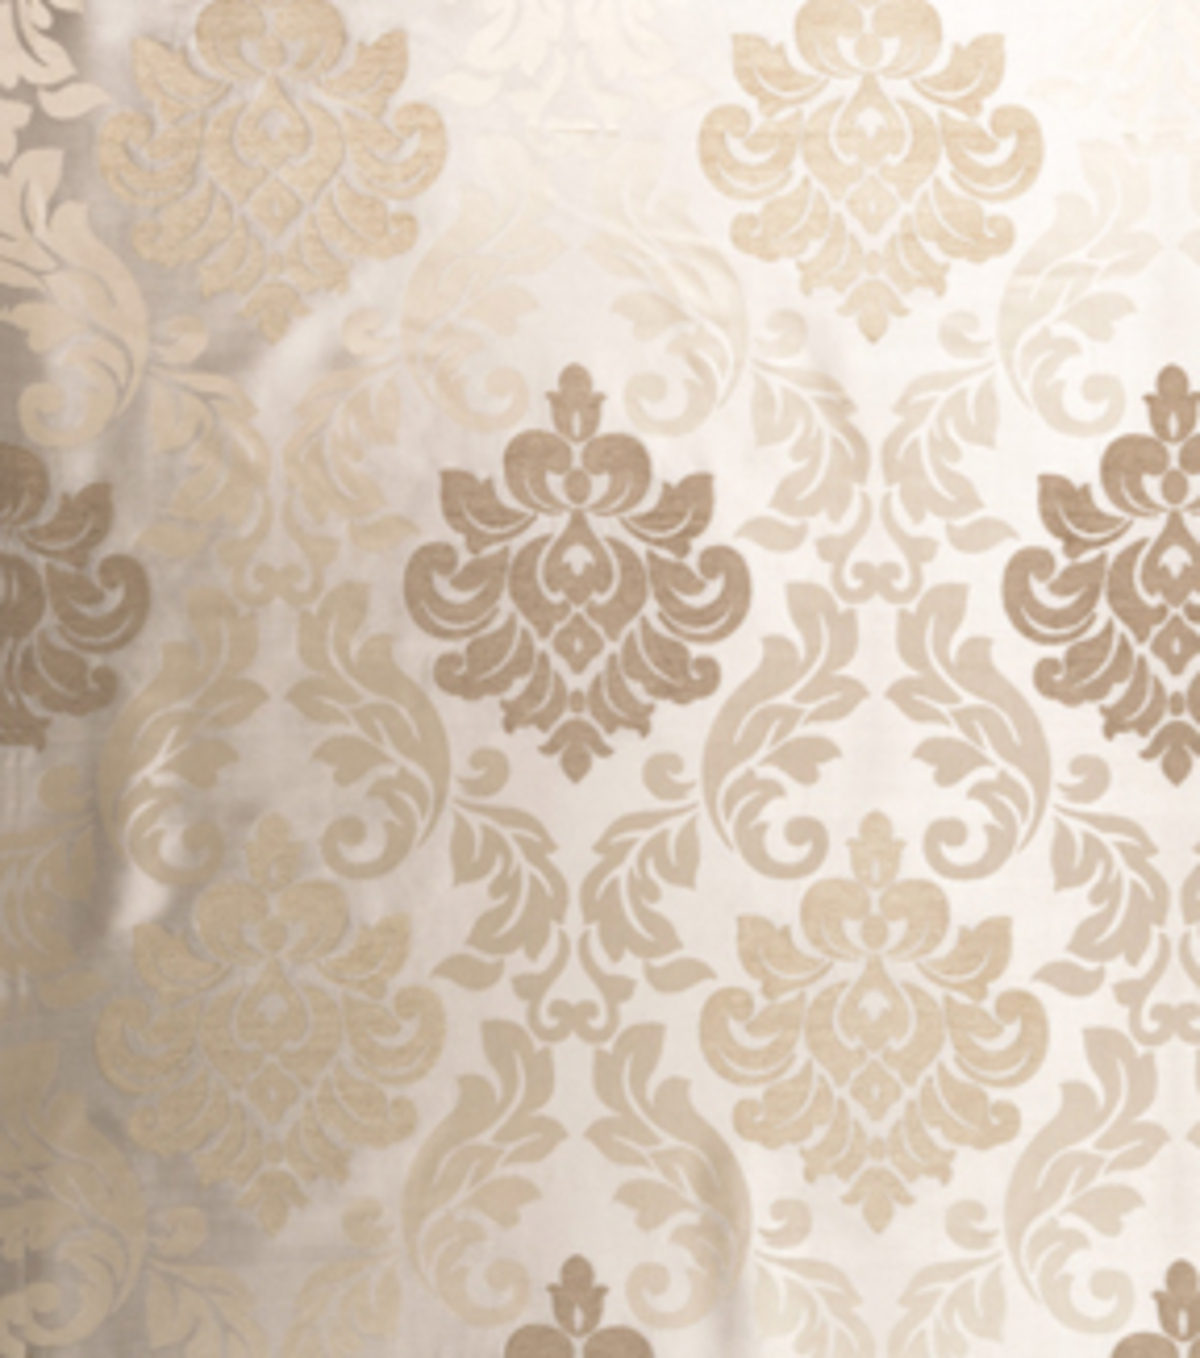 Home Decor 8\u0022x8\u0022 Fabric Swatch-Print Fabric Eaton Square Solo Oyster